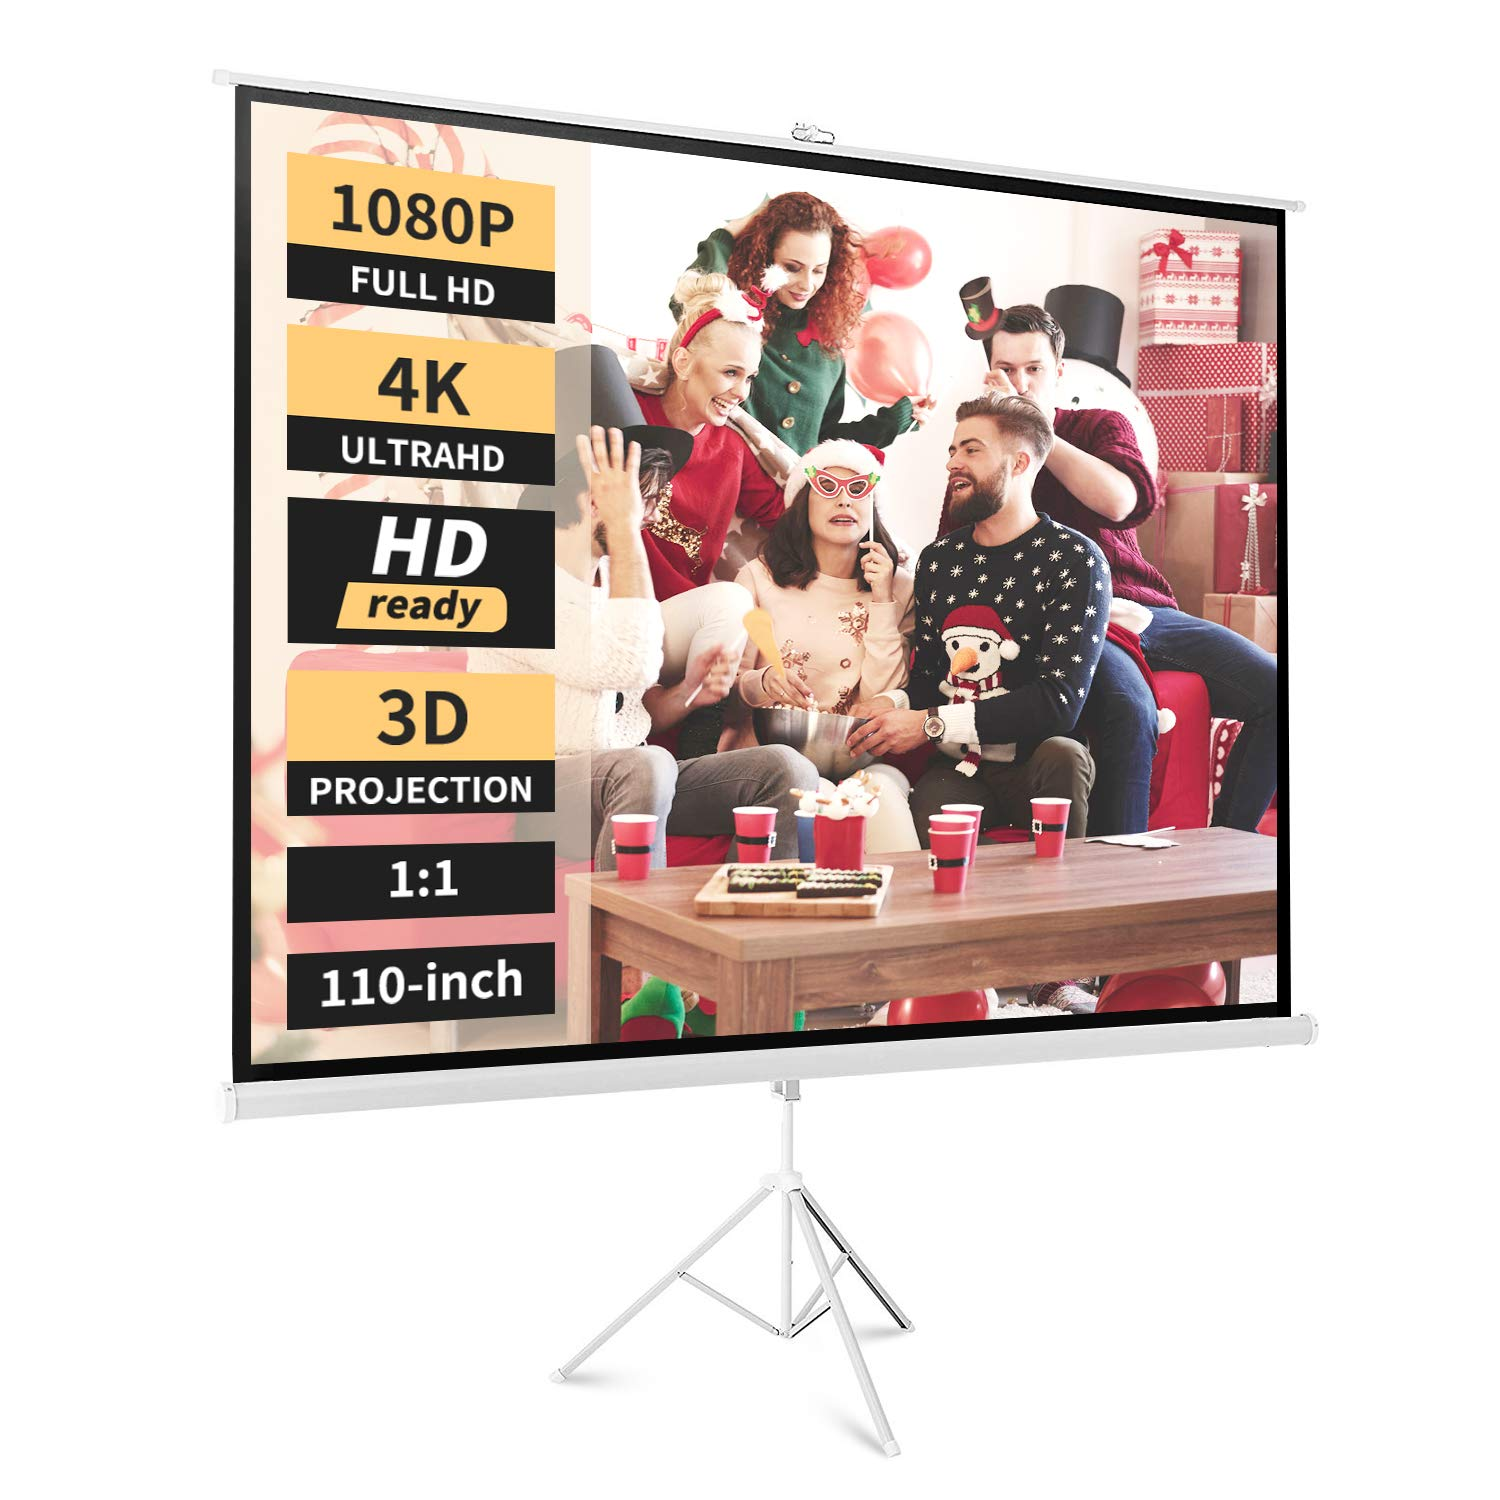 Neewer Portable Projector Screen Tripod Stand - Mobile Projection Screen, Lightweight Carry and Durable Easy Pull Assemble System for Schools Meeting Conference Indoor Outdoor Use, 110 Inch